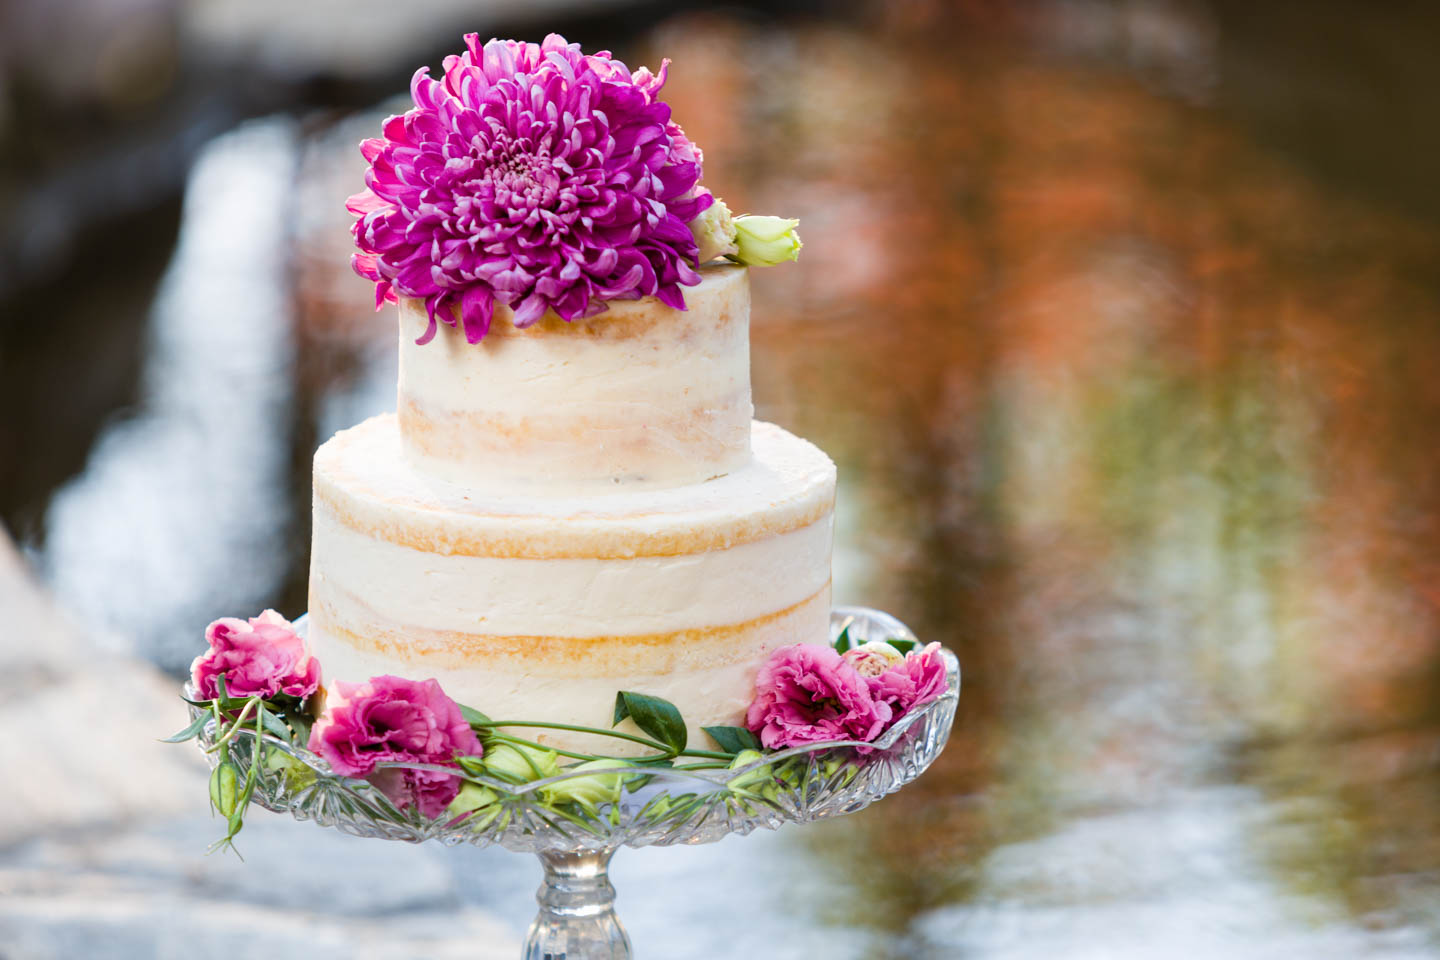 Spring wedding cake with flowers. Cake next to a pond.